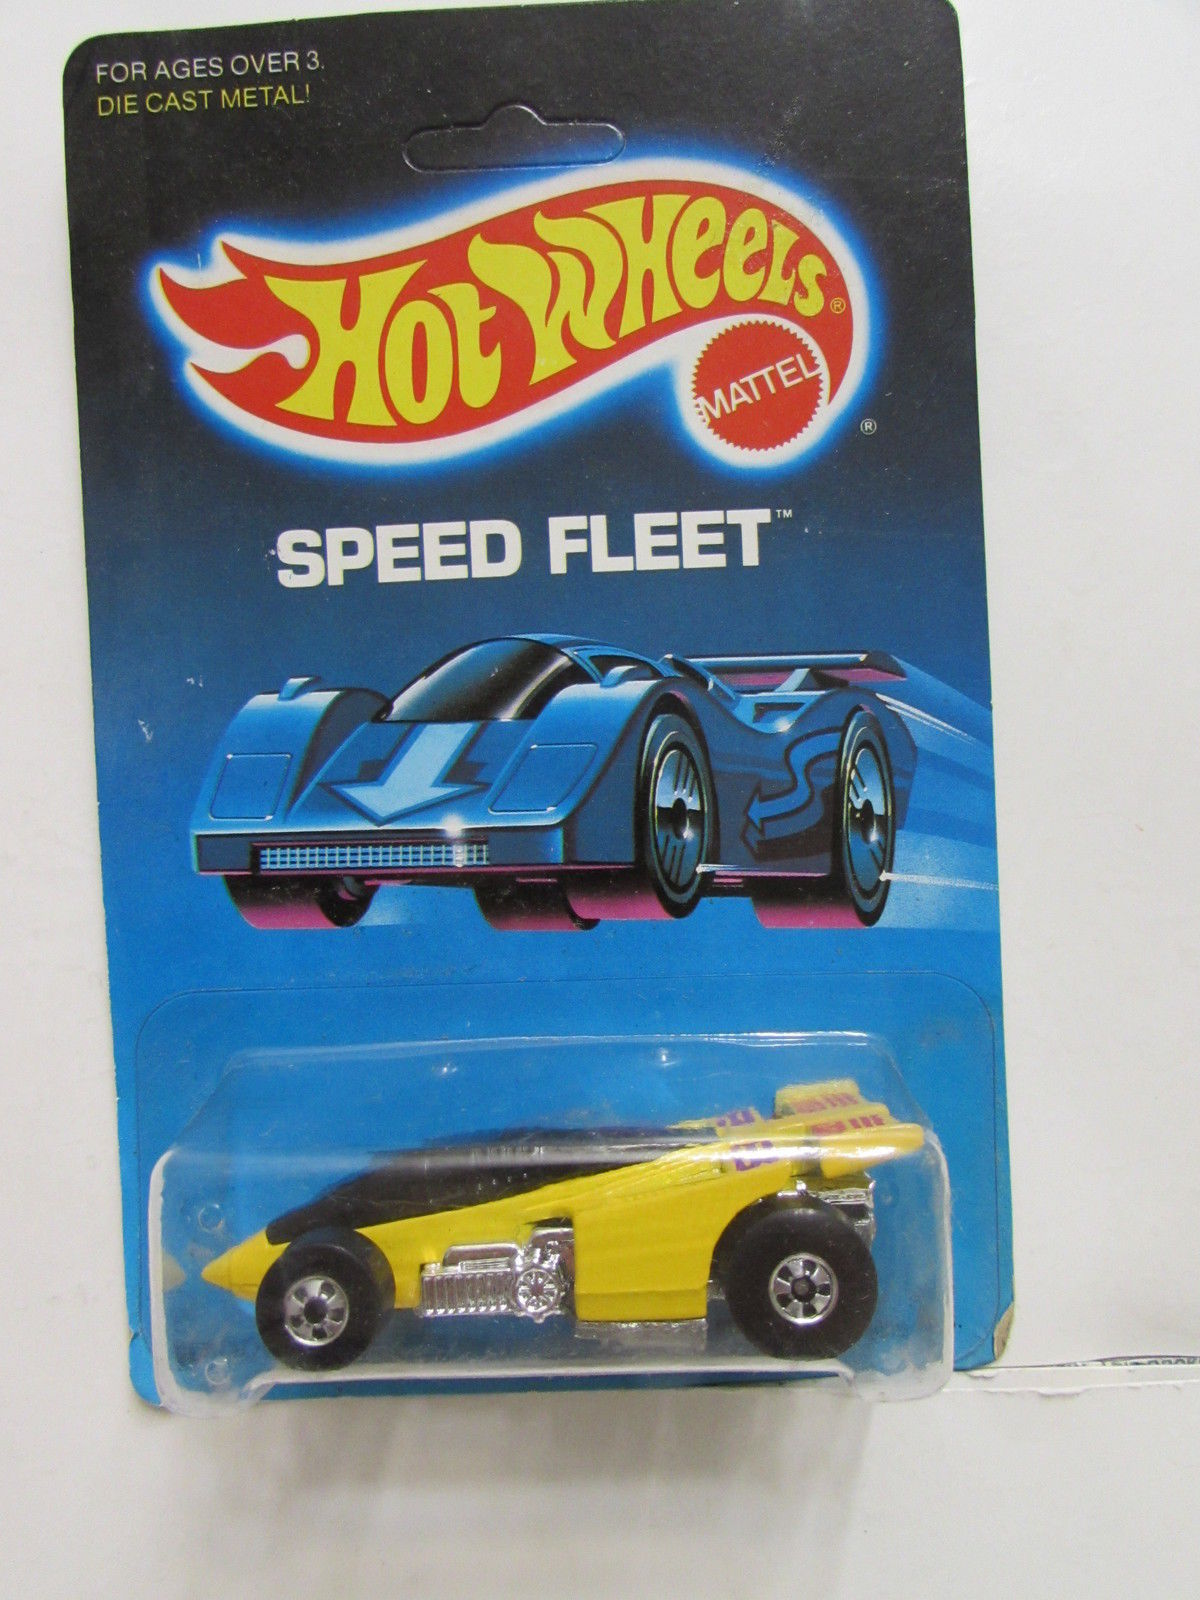 HOT WHEELS 1986 SPEED FLEET SHADOW JET YELLOW